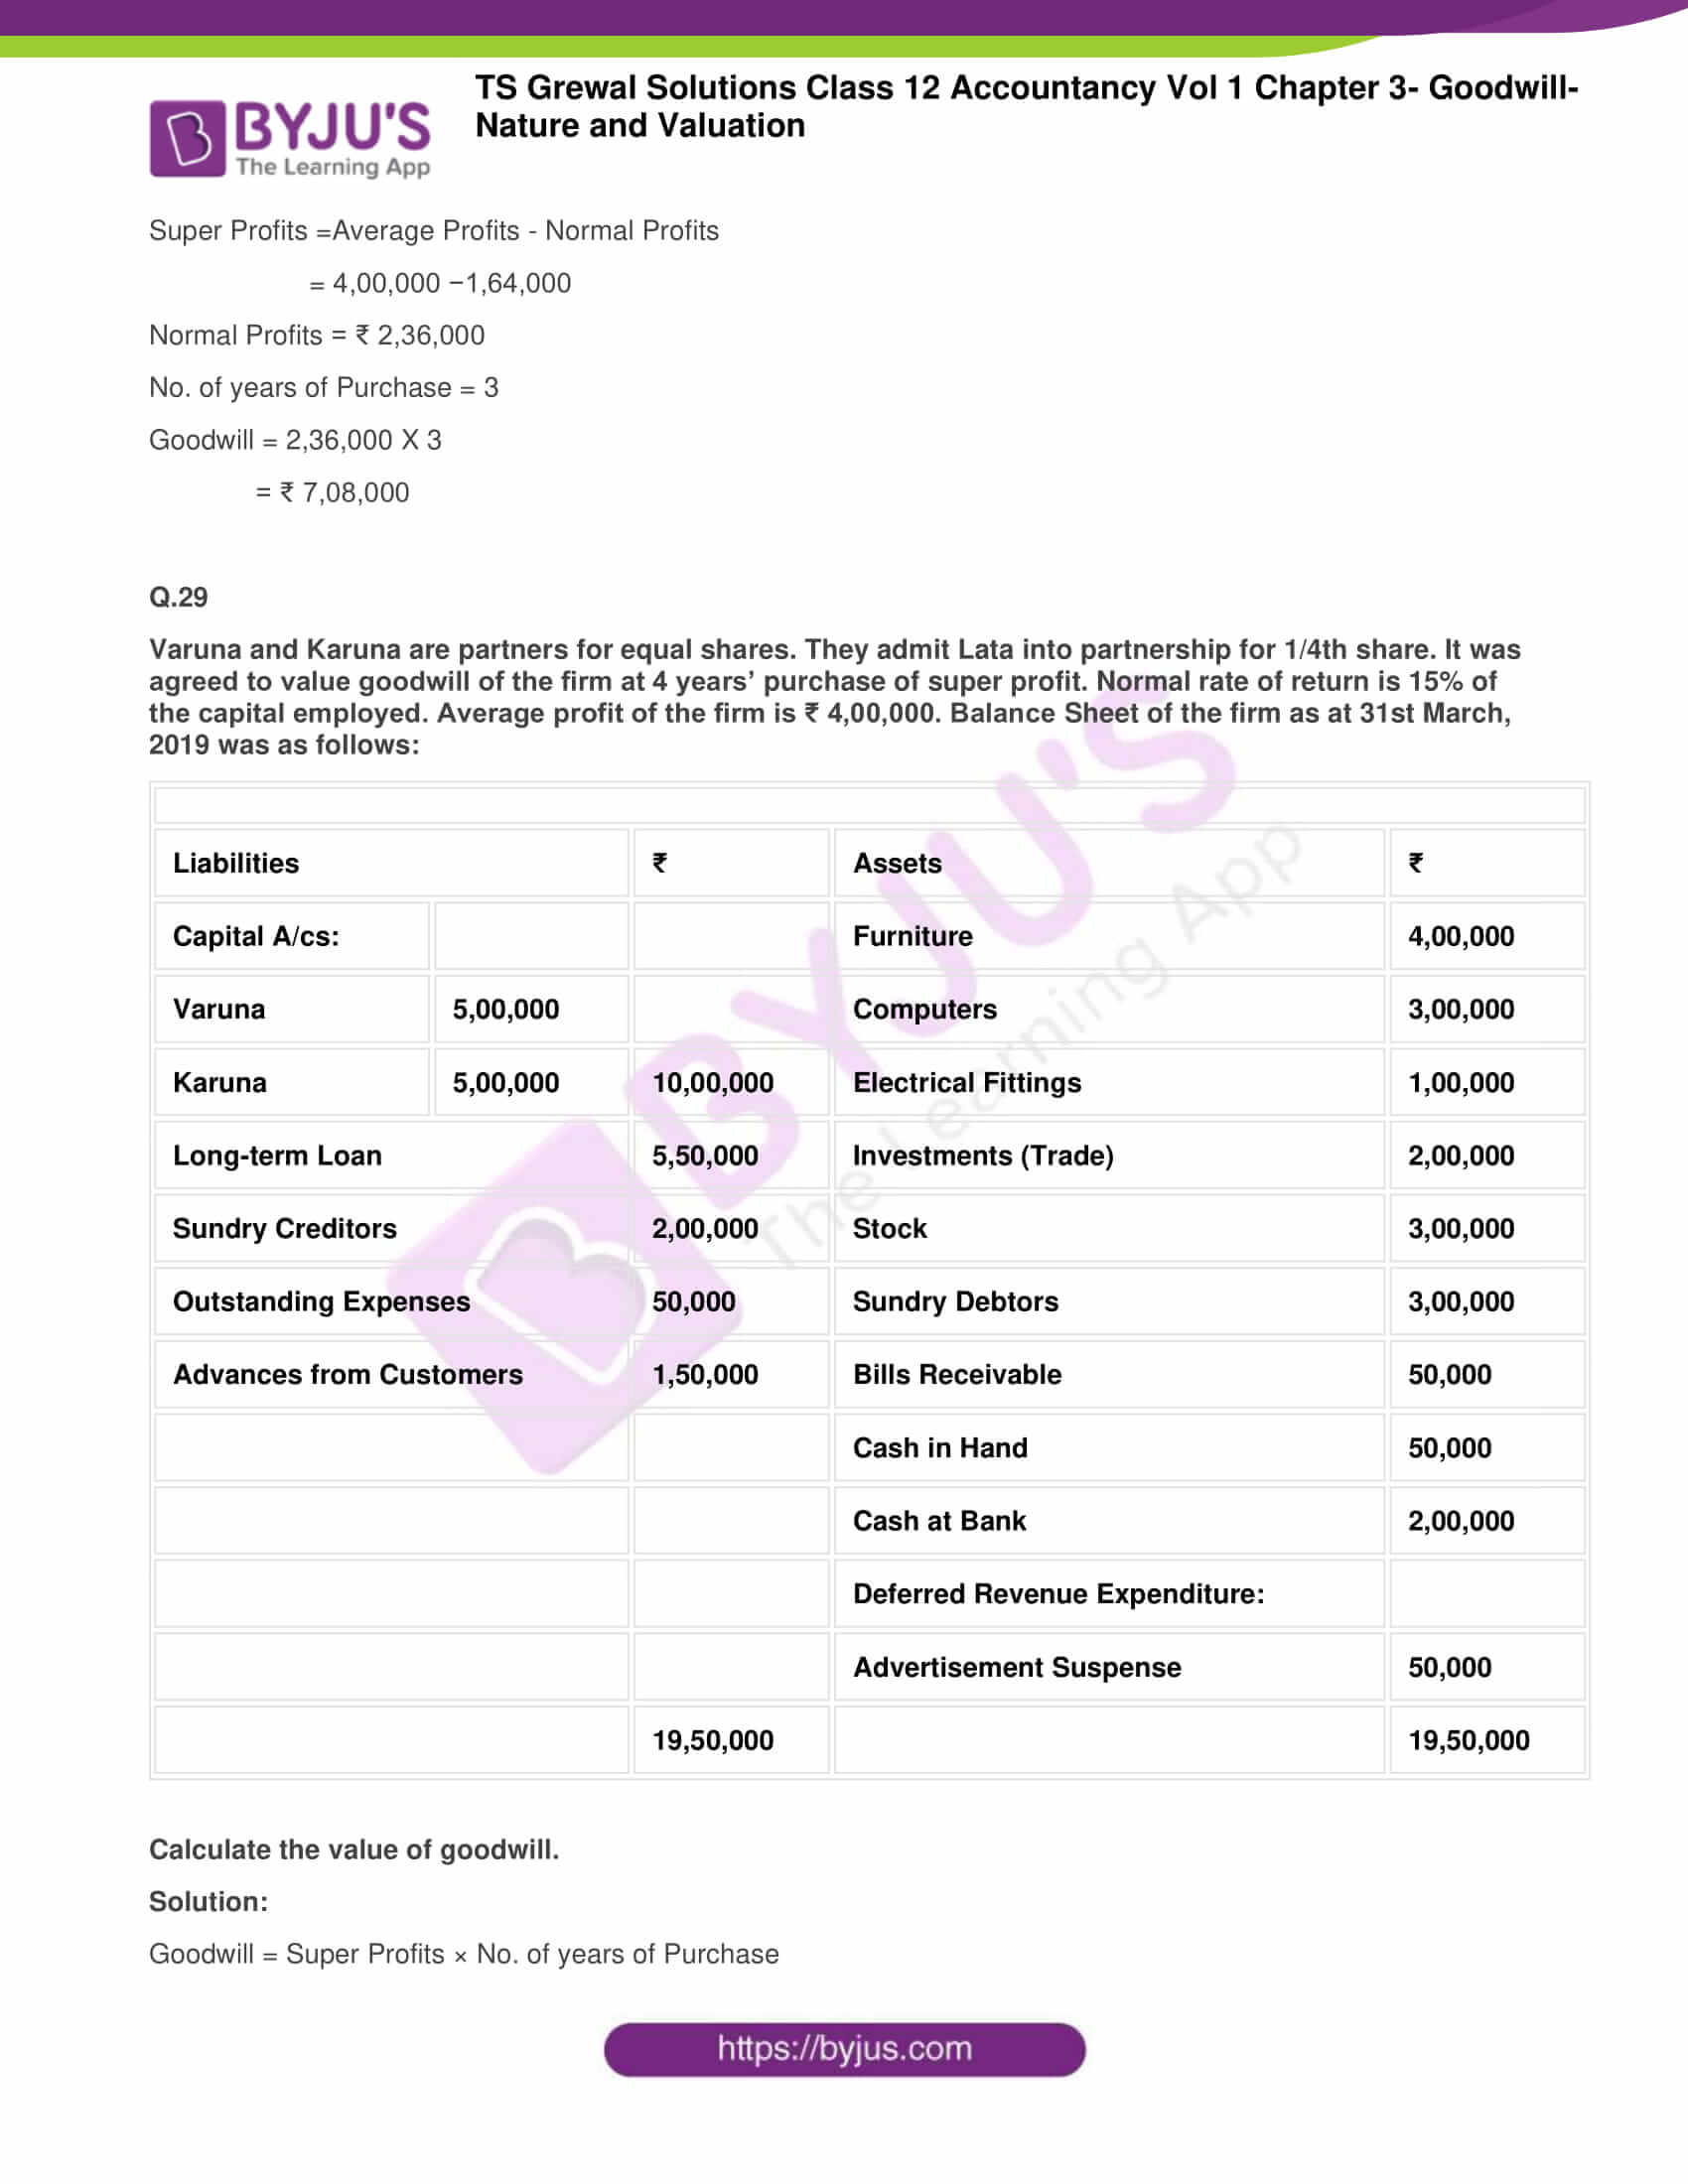 ts grewal solutions for class 12 accountancy vol 1 chapter 326